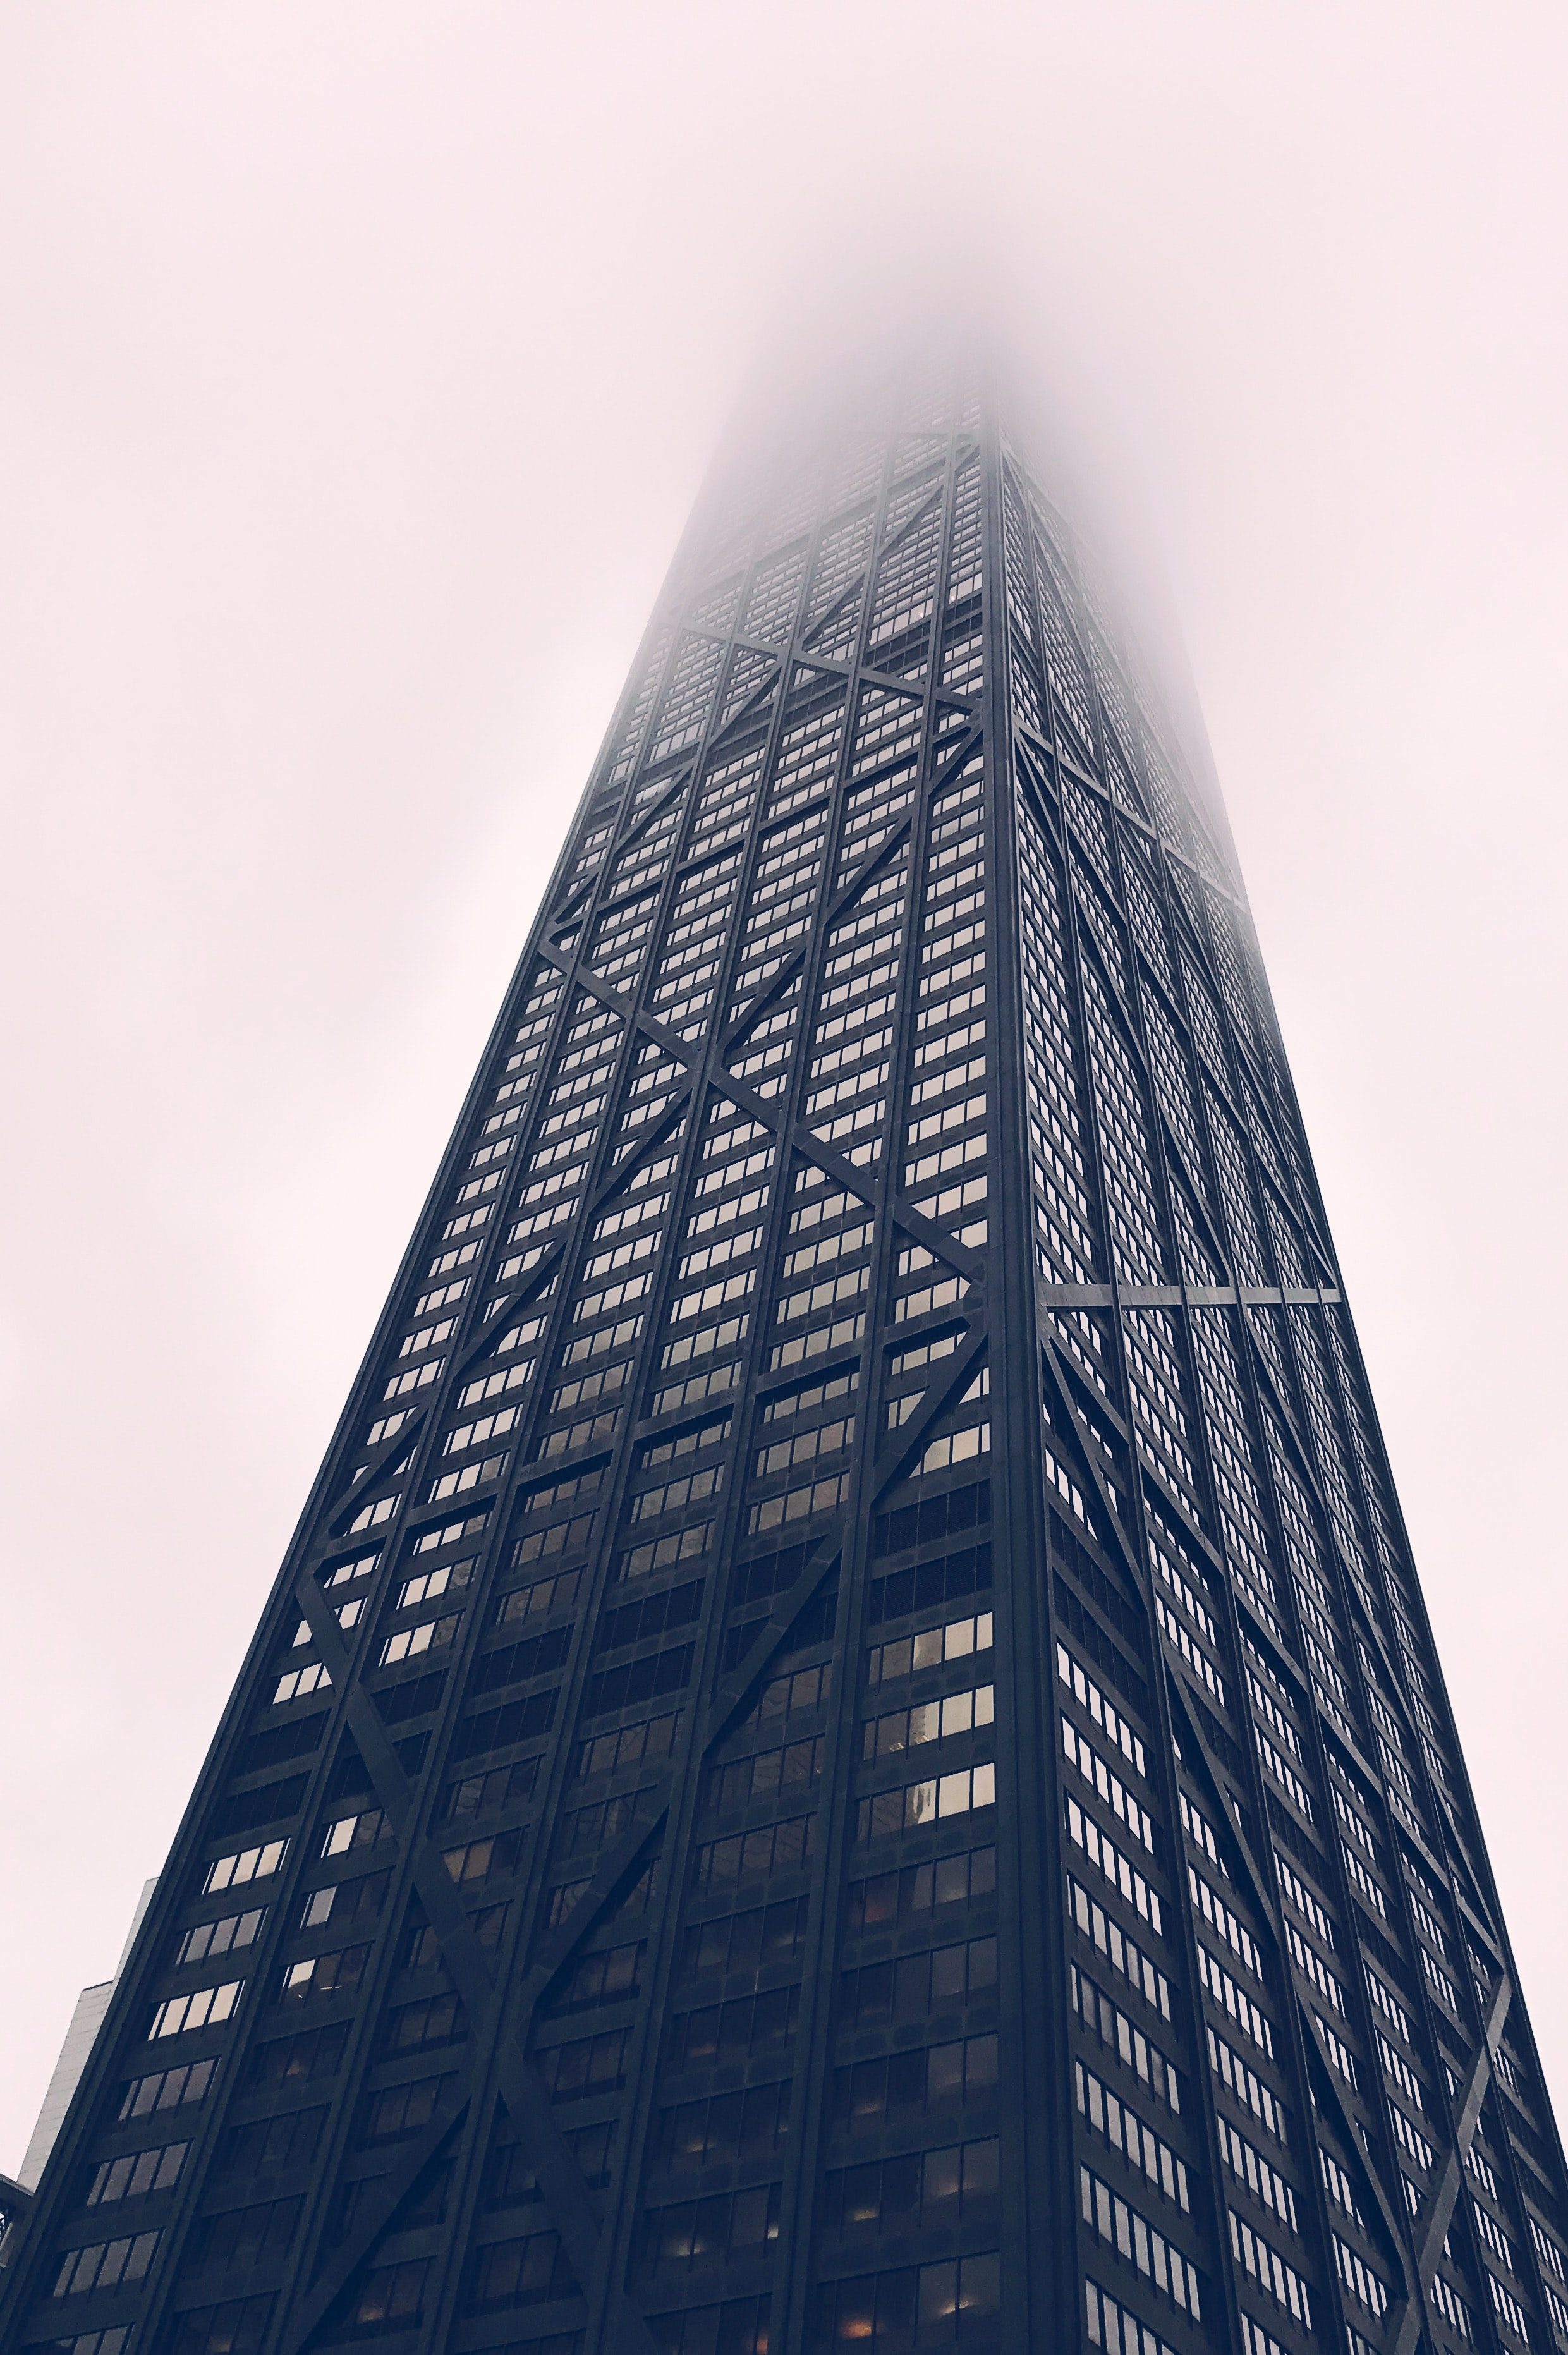 City building in Chicago disappears into the foggy sky